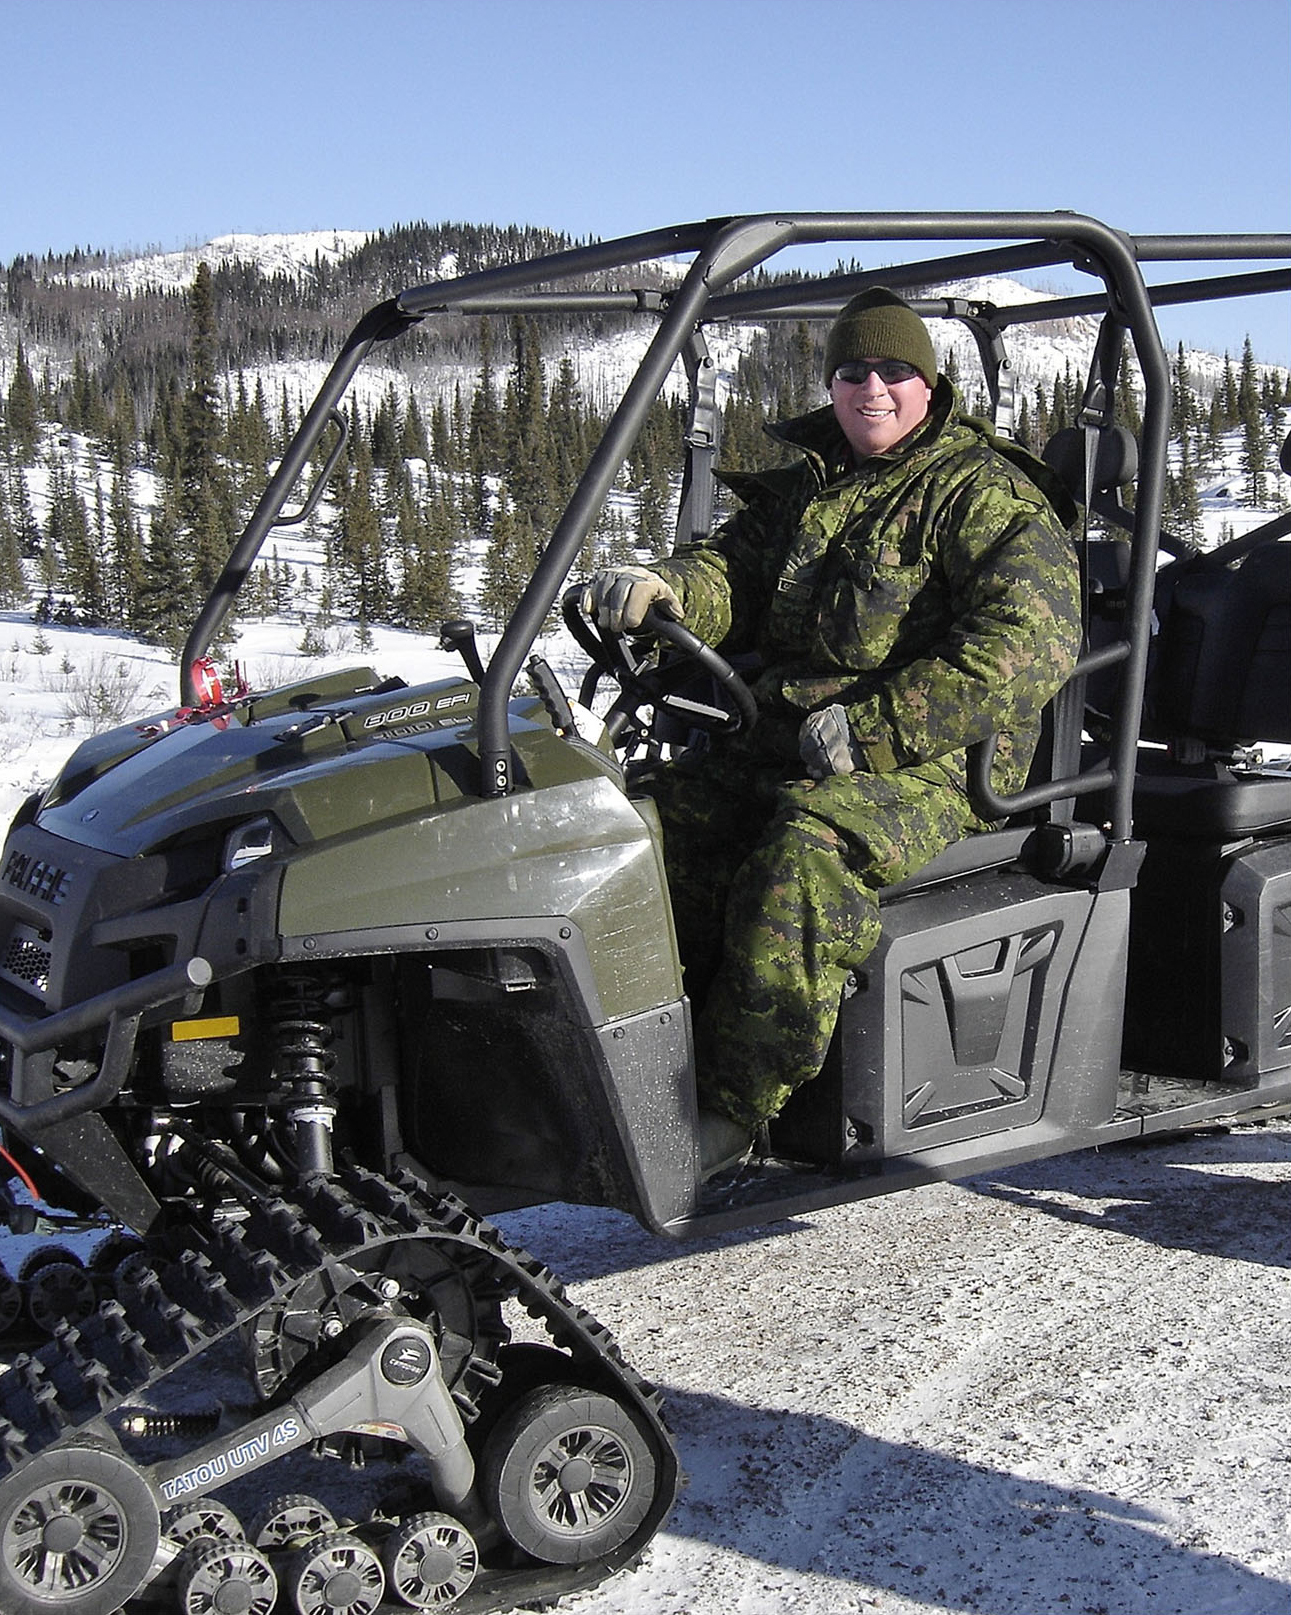 A military member uses a Utility Terrain Vehicle to travel in deep snow off-road during winter. Effective, adaptable means of transportation are crucial to military operations in Labrador. PHOTO: DND